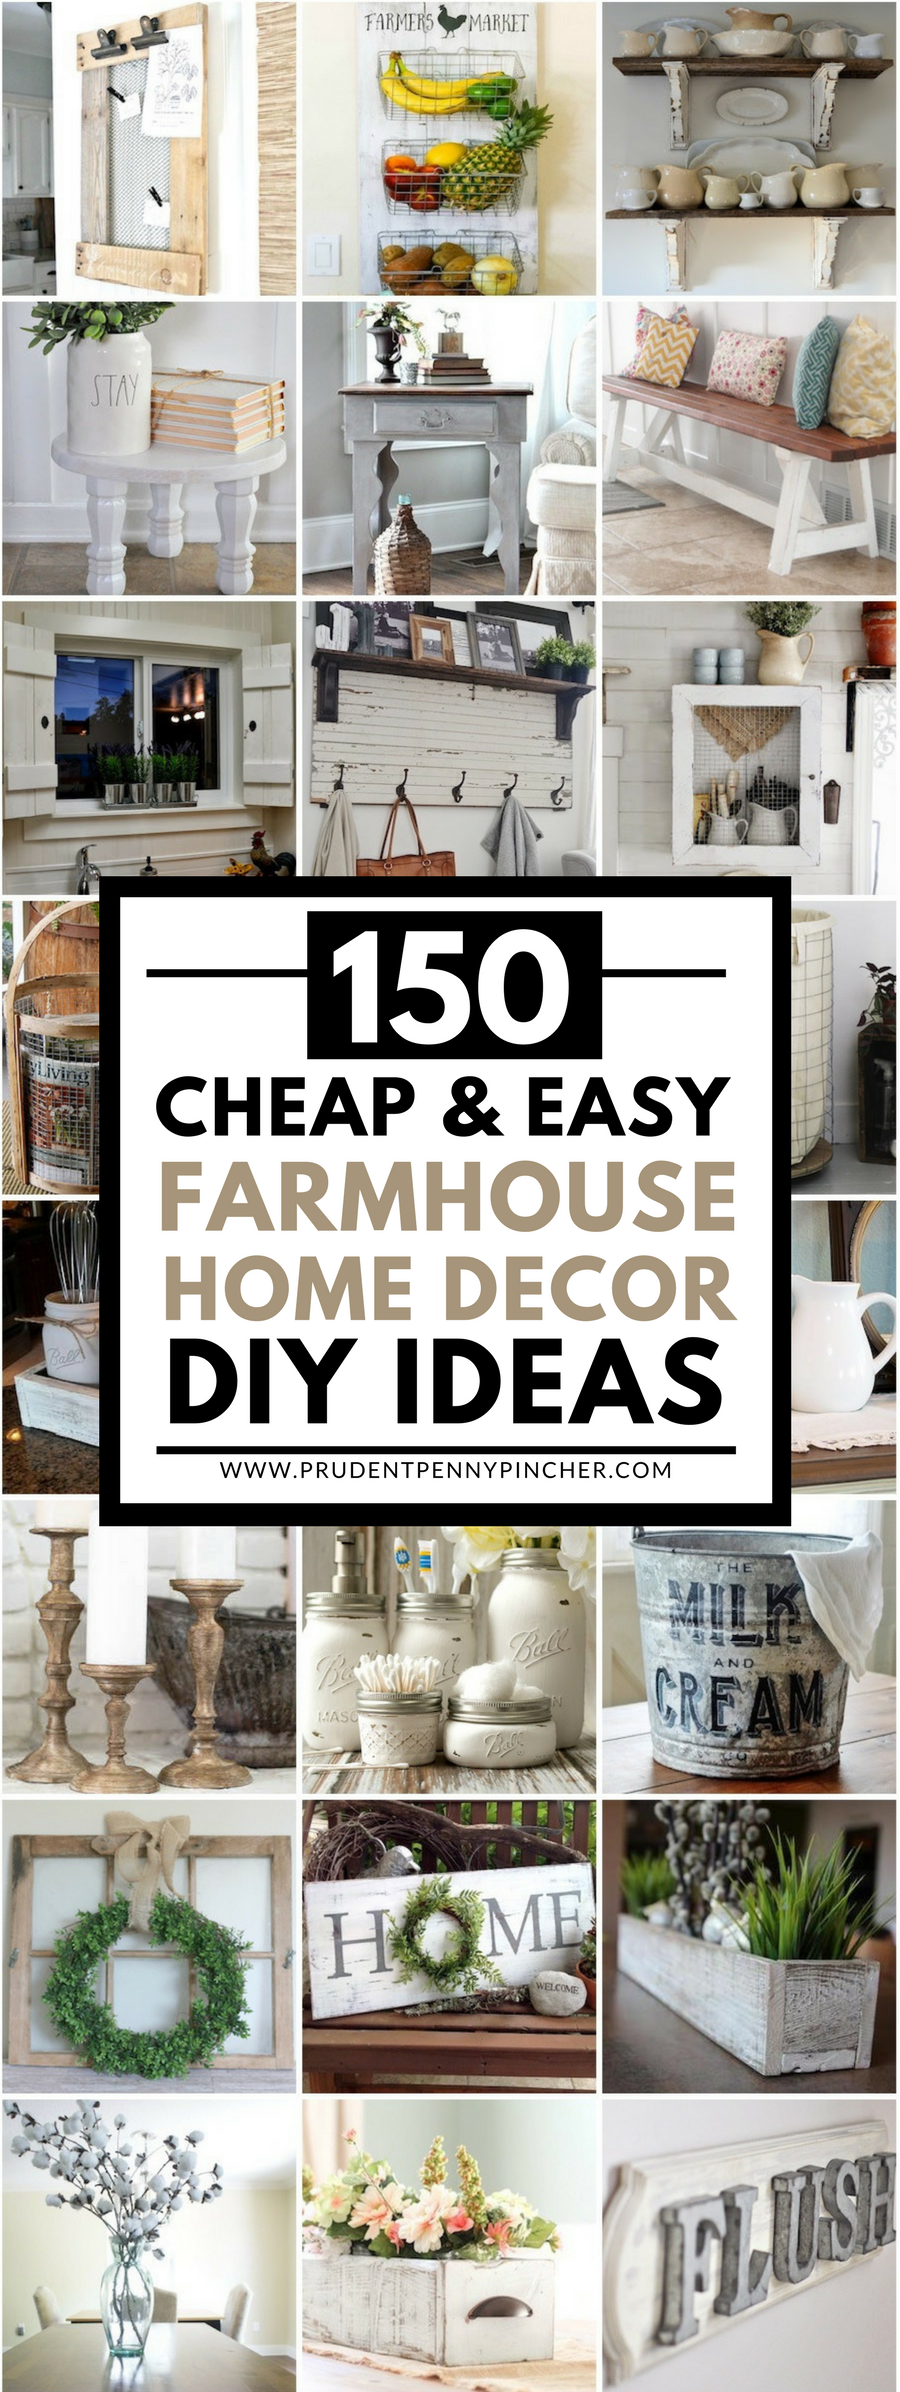 150 Cheap And Easy Diy Farmhouse Style Home Decor Ideas Pinterest Farmhouse Style Easy And